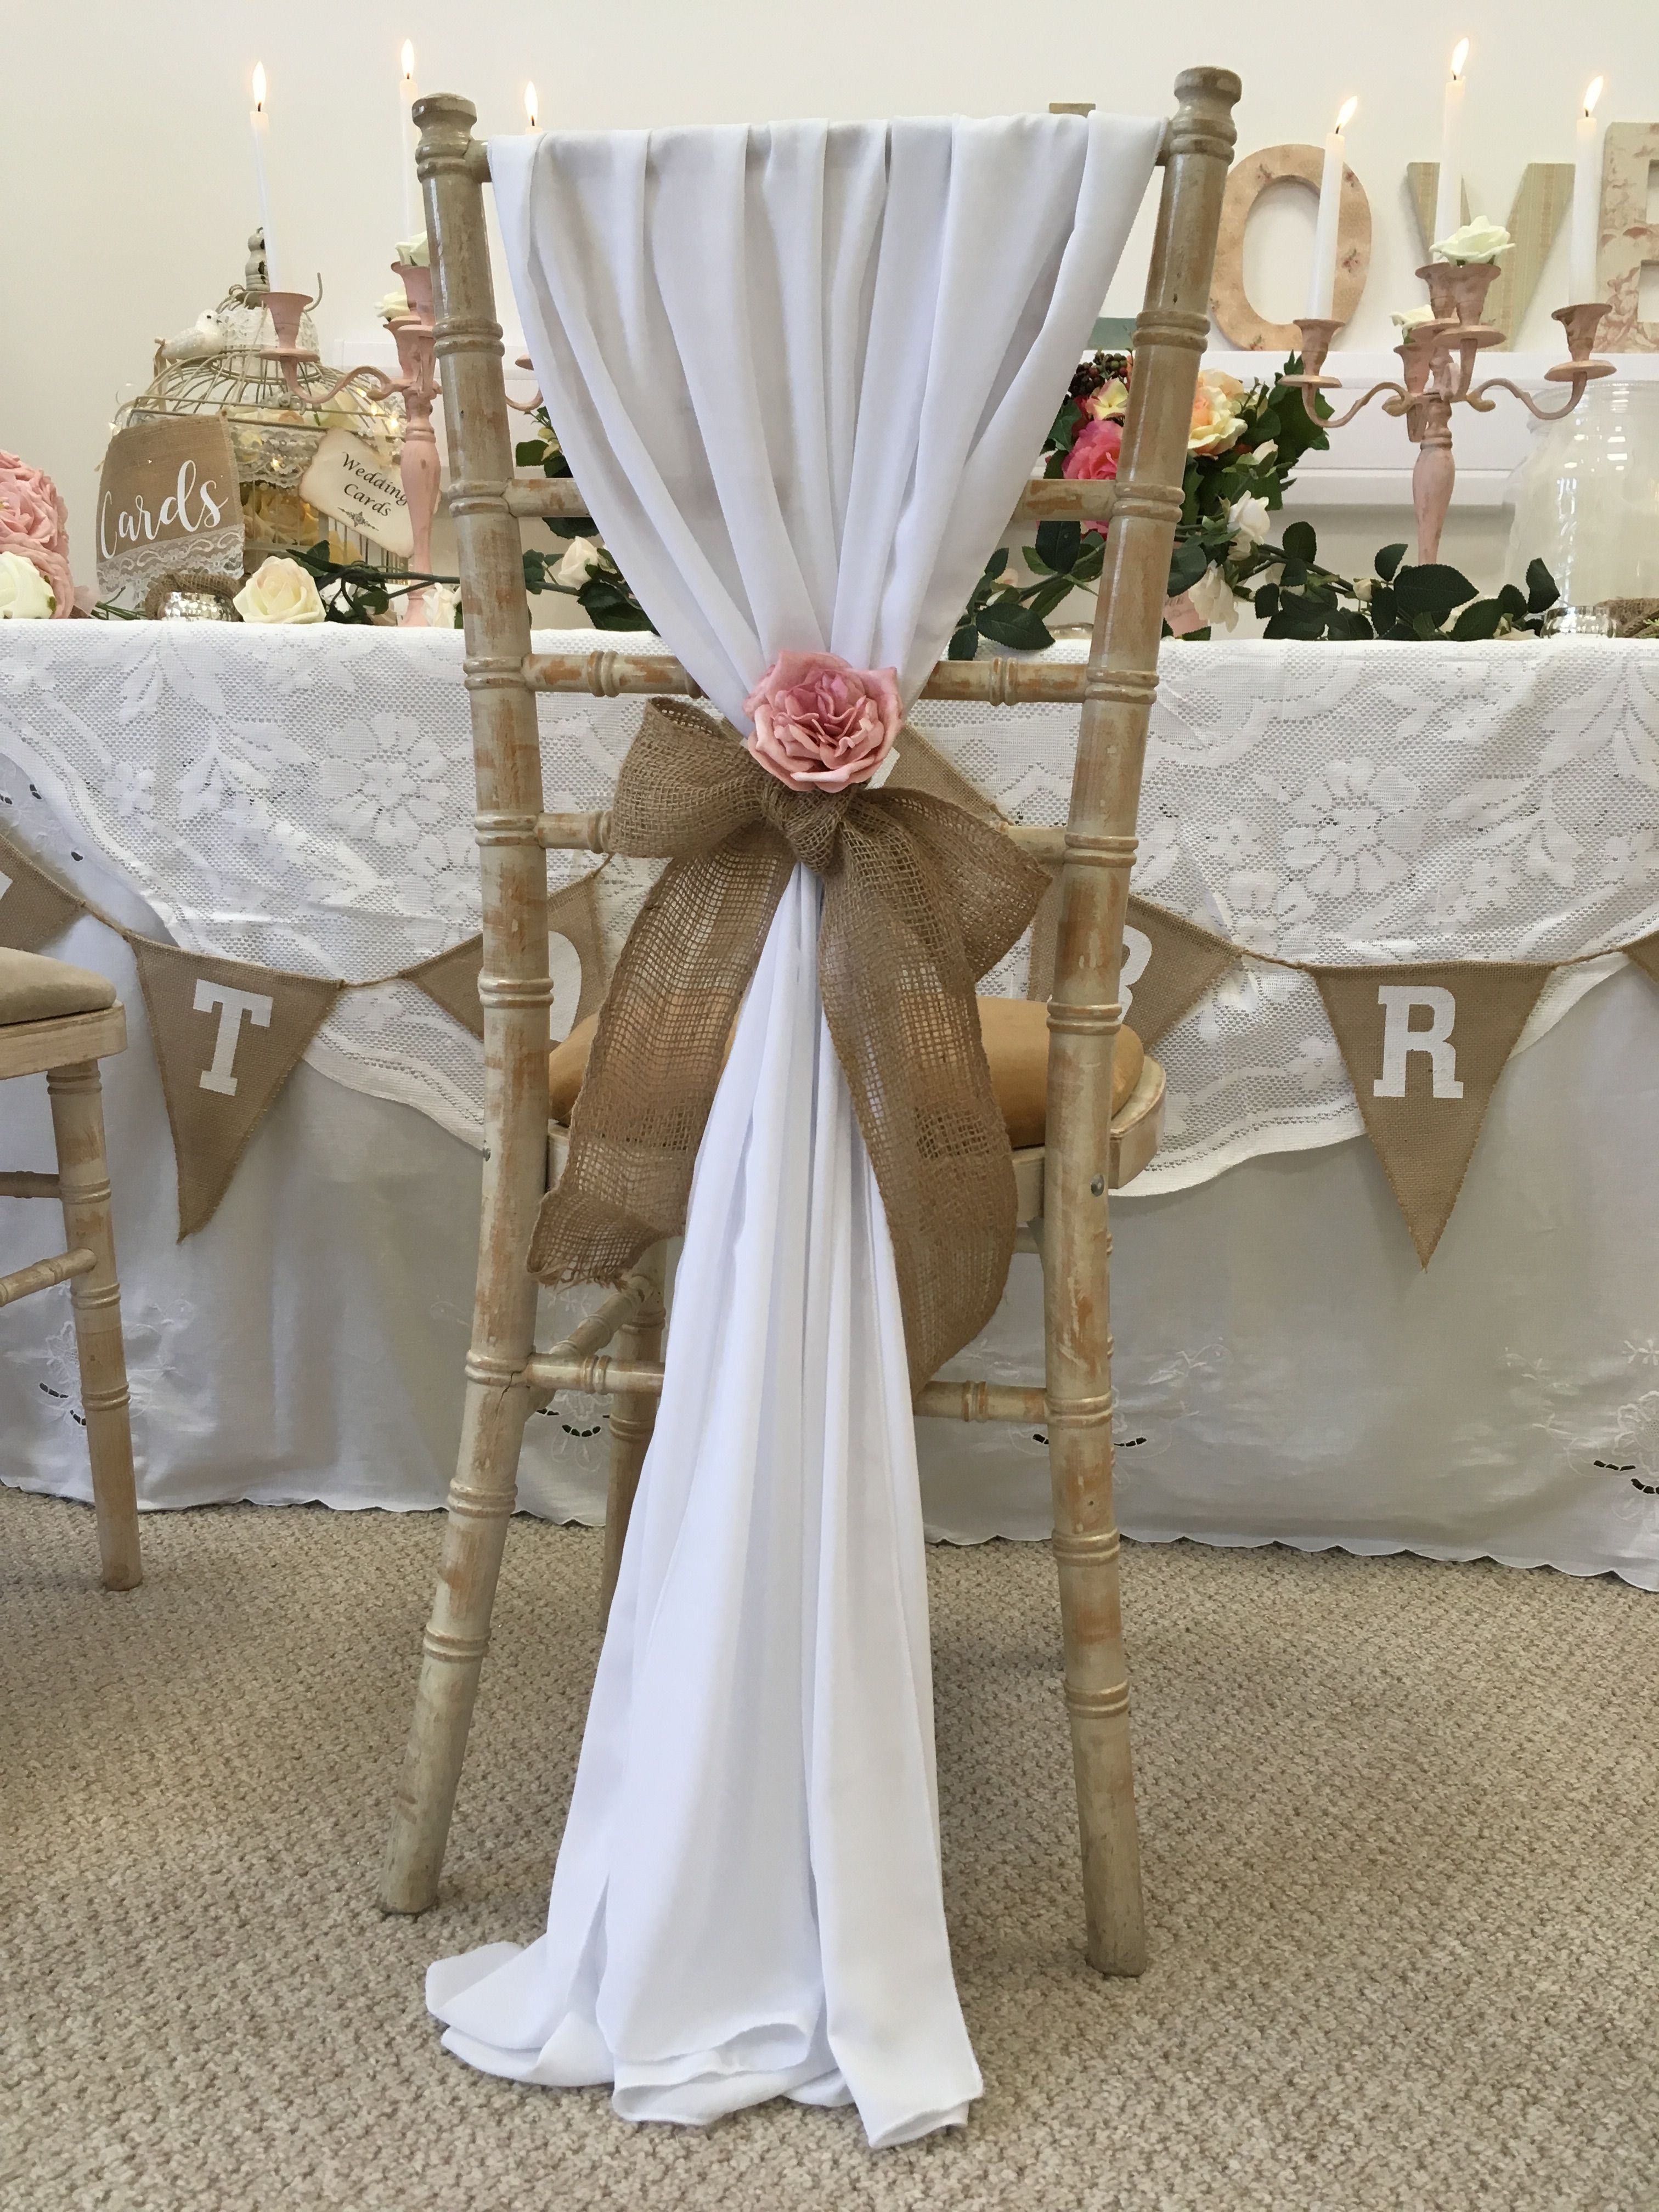 wedding chair covers gloucester rocker patio chairs chiffon drape forget me not hire boda pinterest